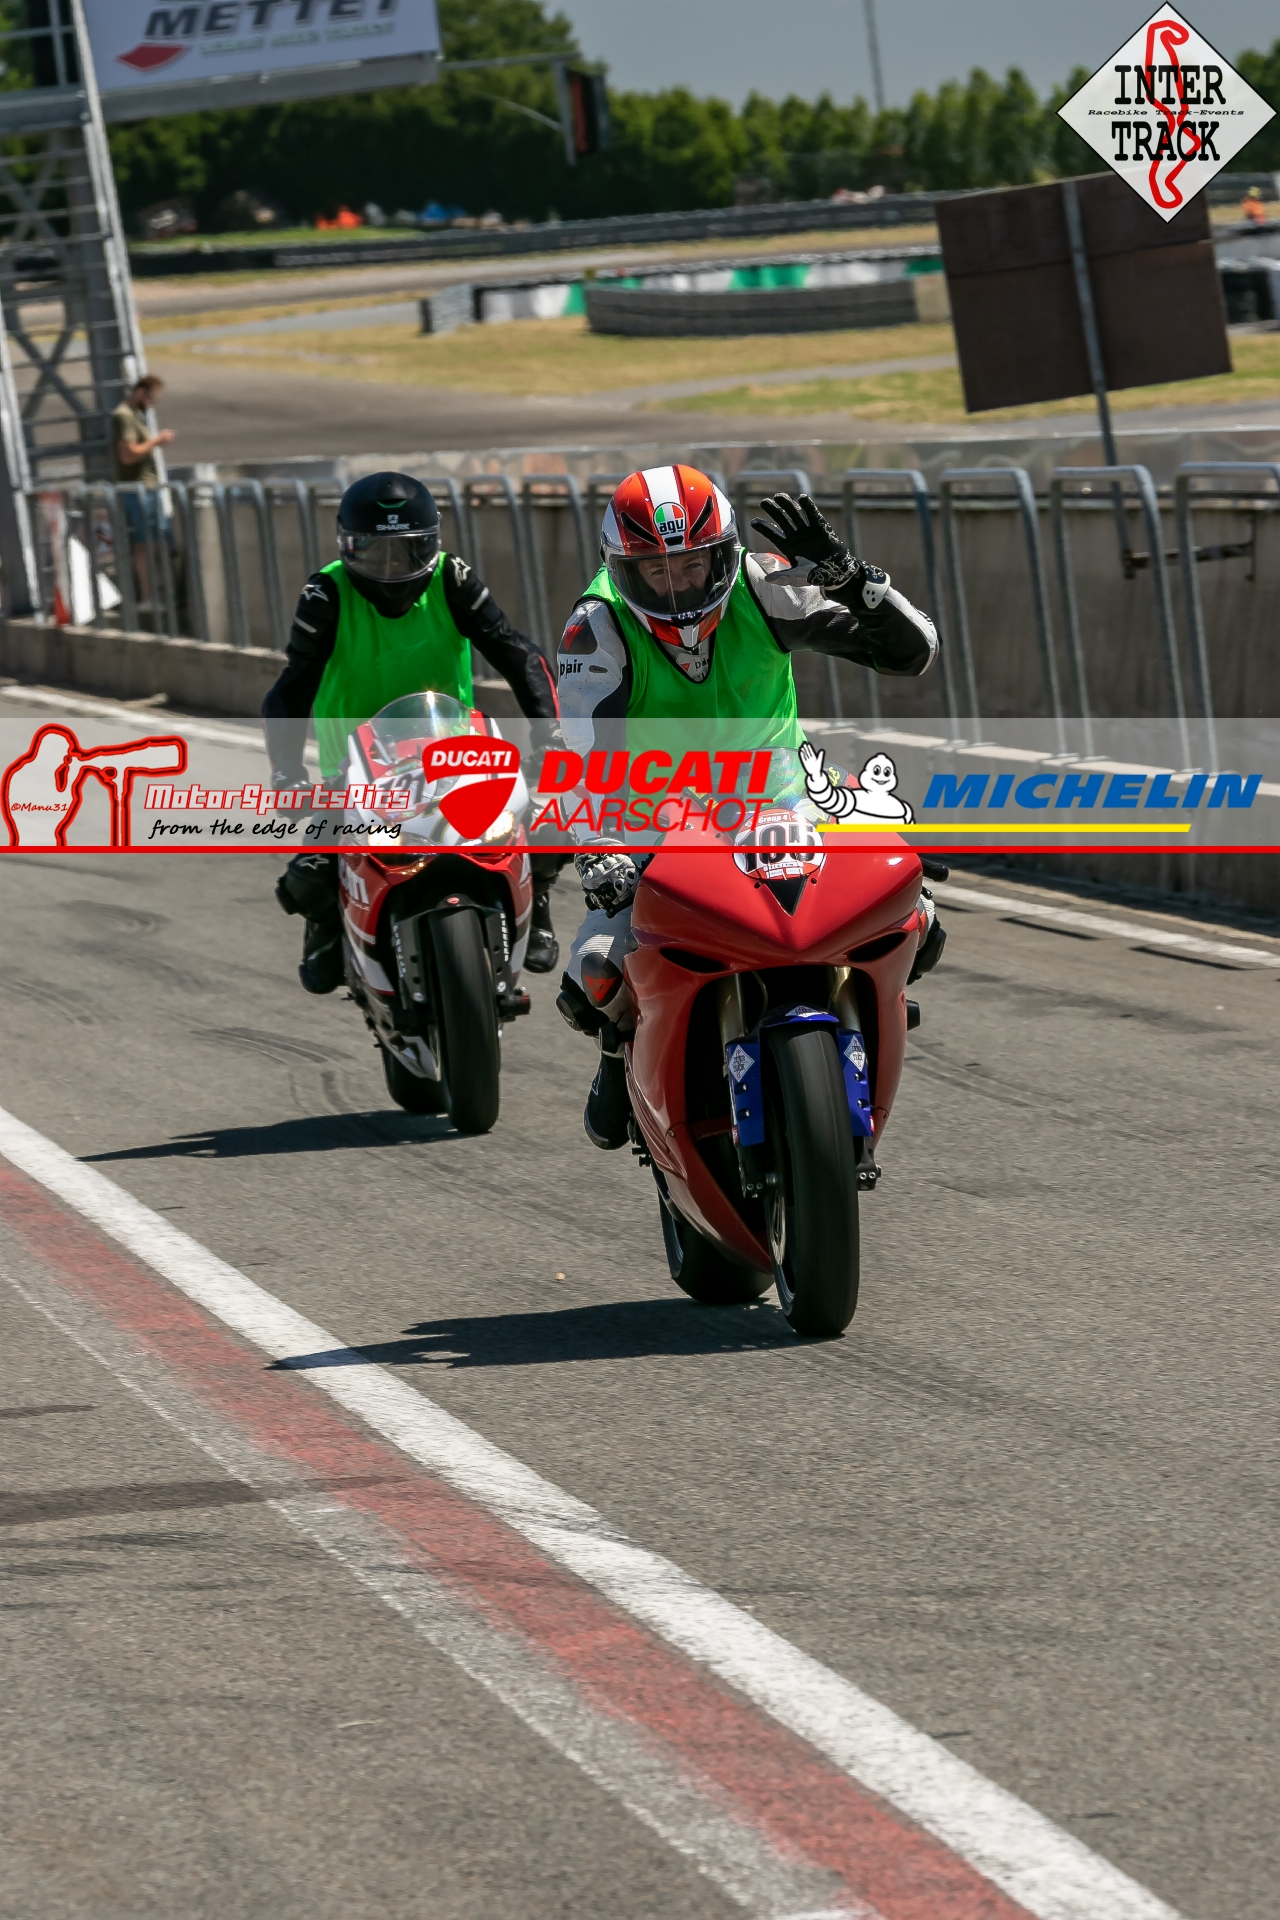 28-06-19 Inter-Track at Mettet Ducati Aarschot Day Group 1 Green #139